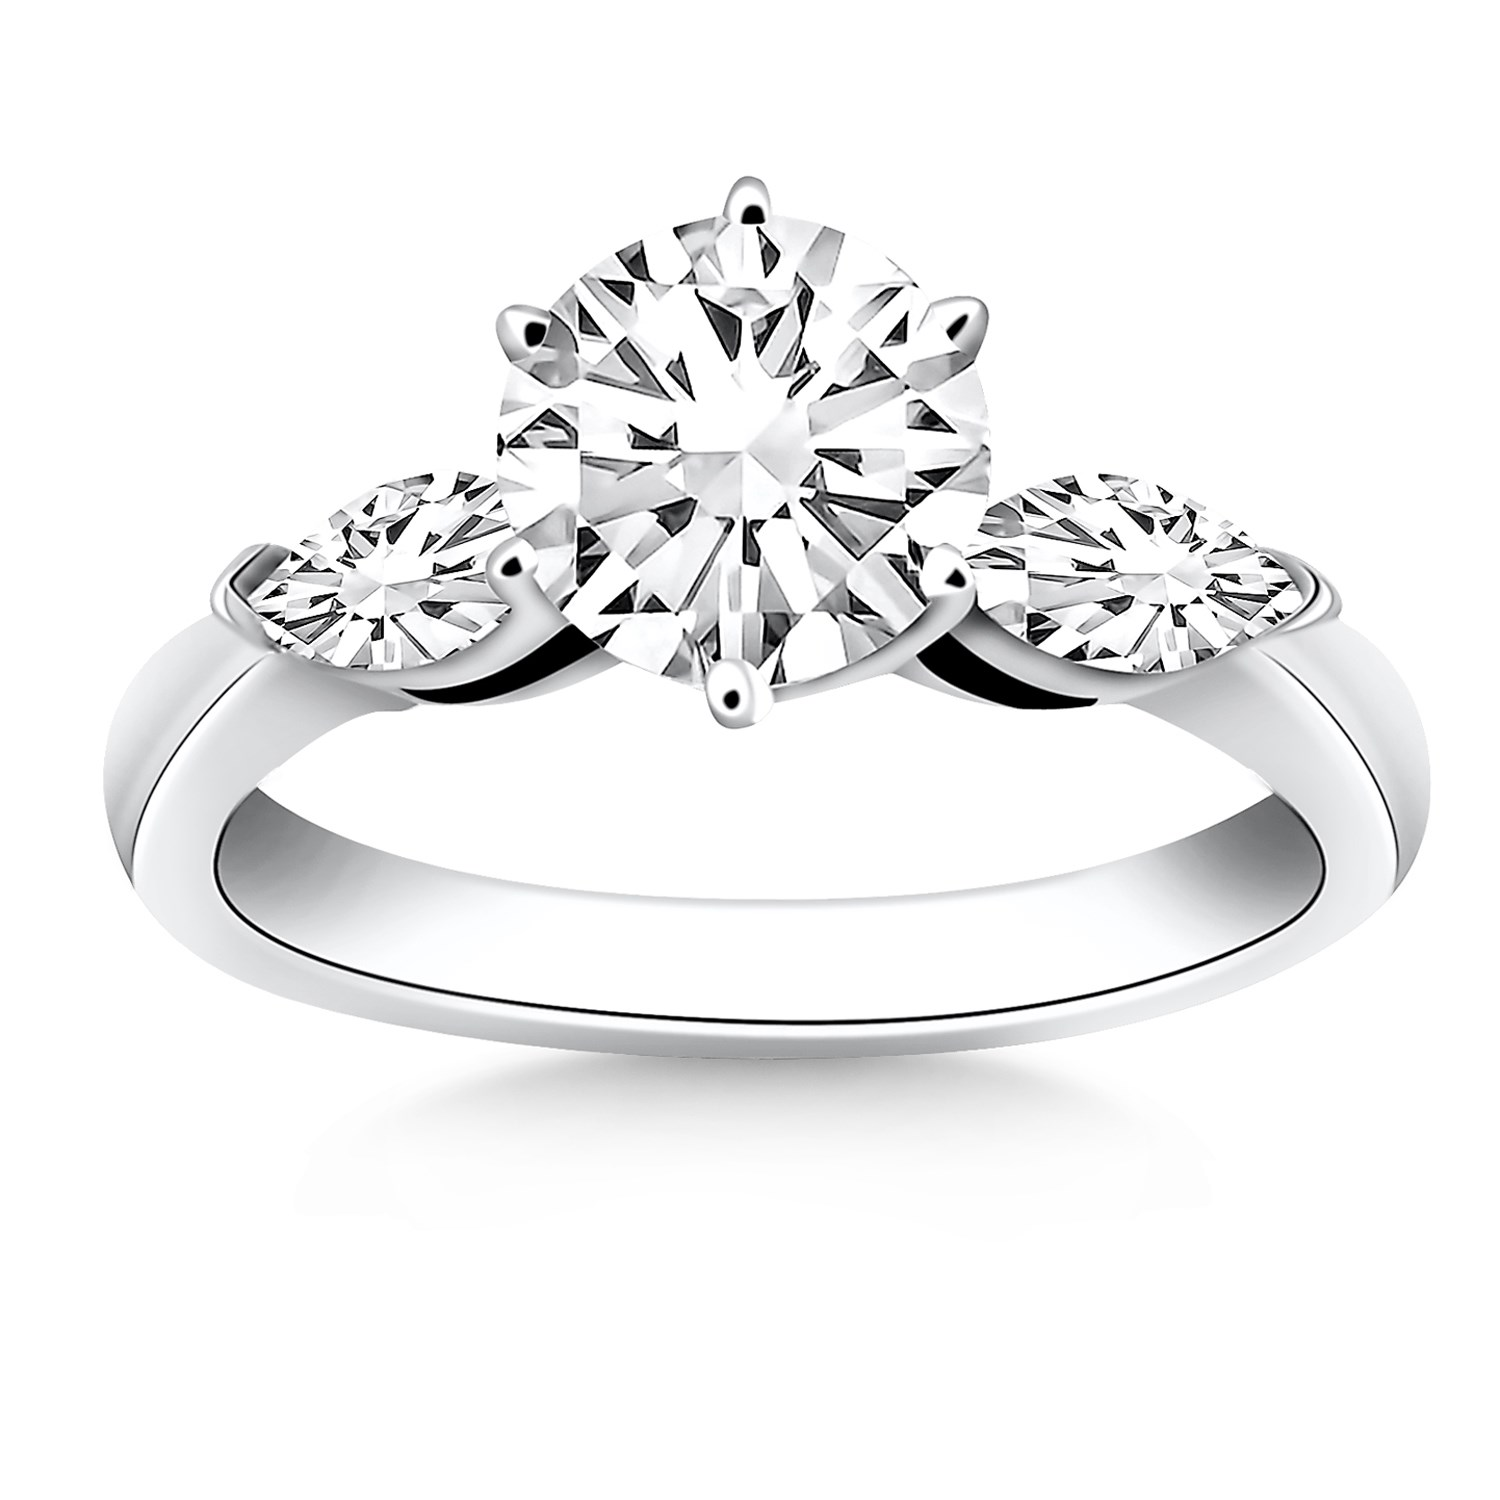 Stuller Three Stone Side Stones: Three Stone Engagement Ring Mounting With Marquise Side